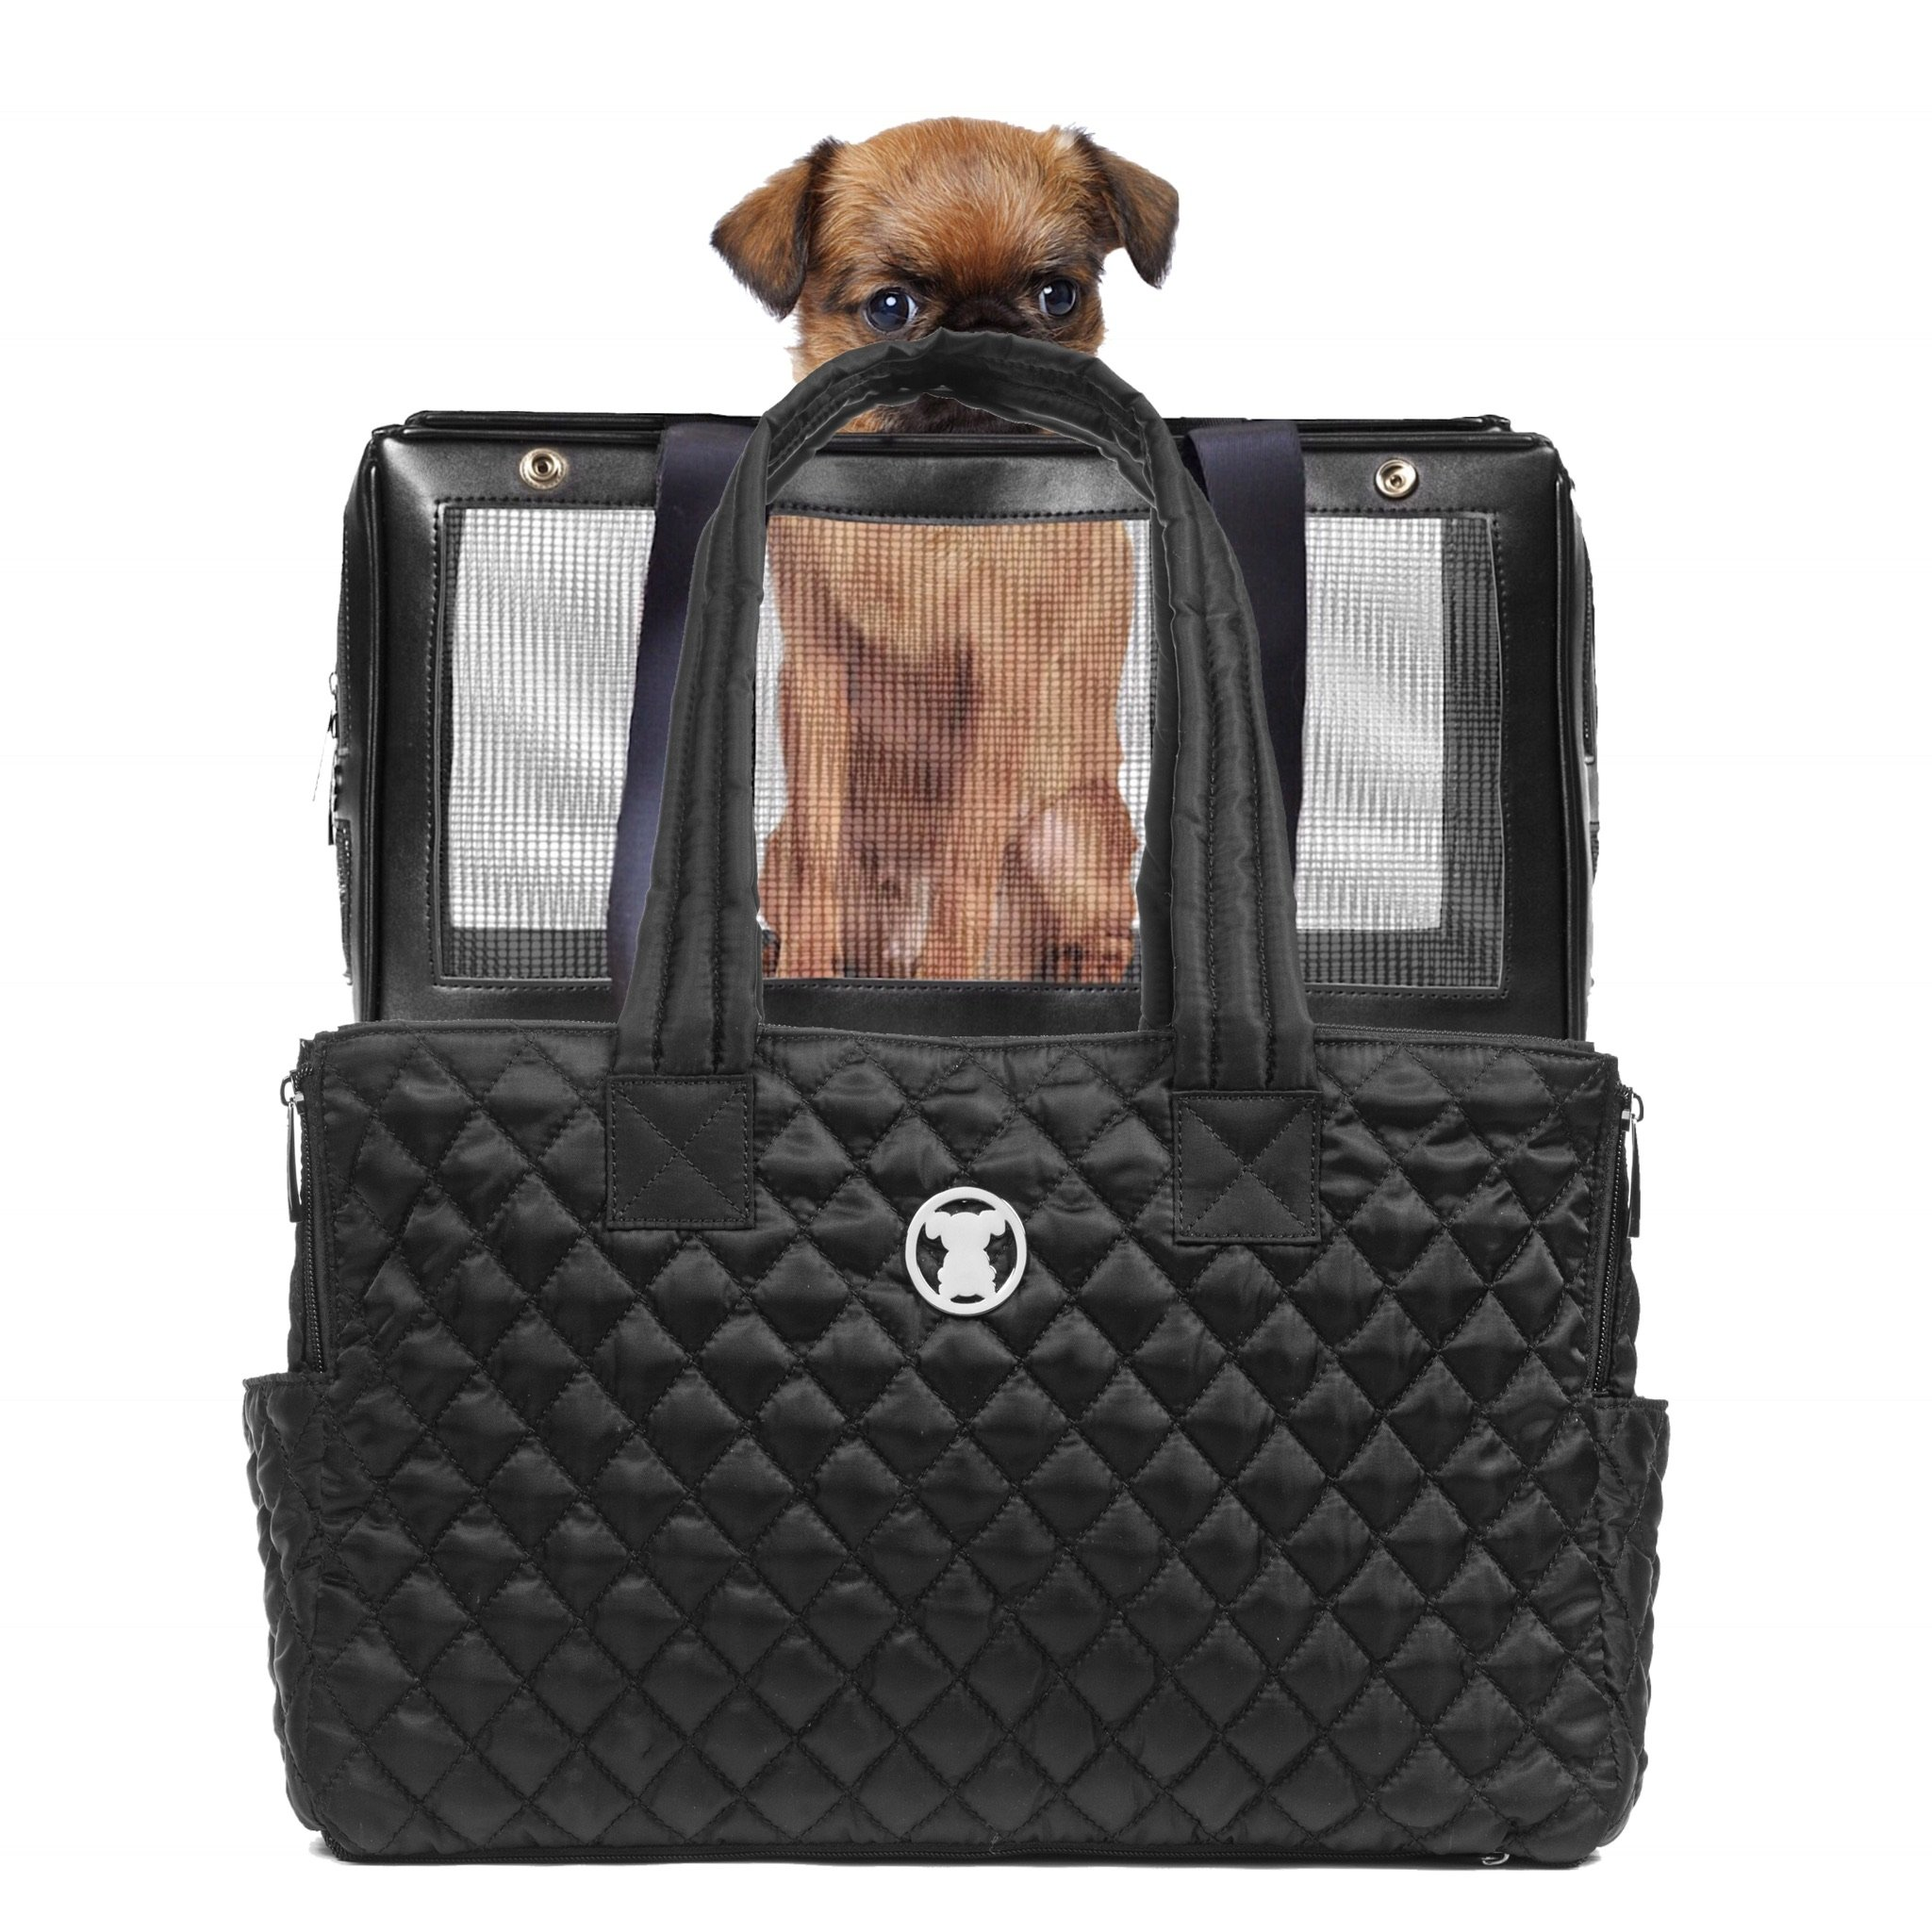 Miso Pup Black Quilted Interchangeable Airline Approved Pet Carrier Combo with Pockets for Small Dogs (Pet Carrier Base & Shell Tote) by Miso Pup